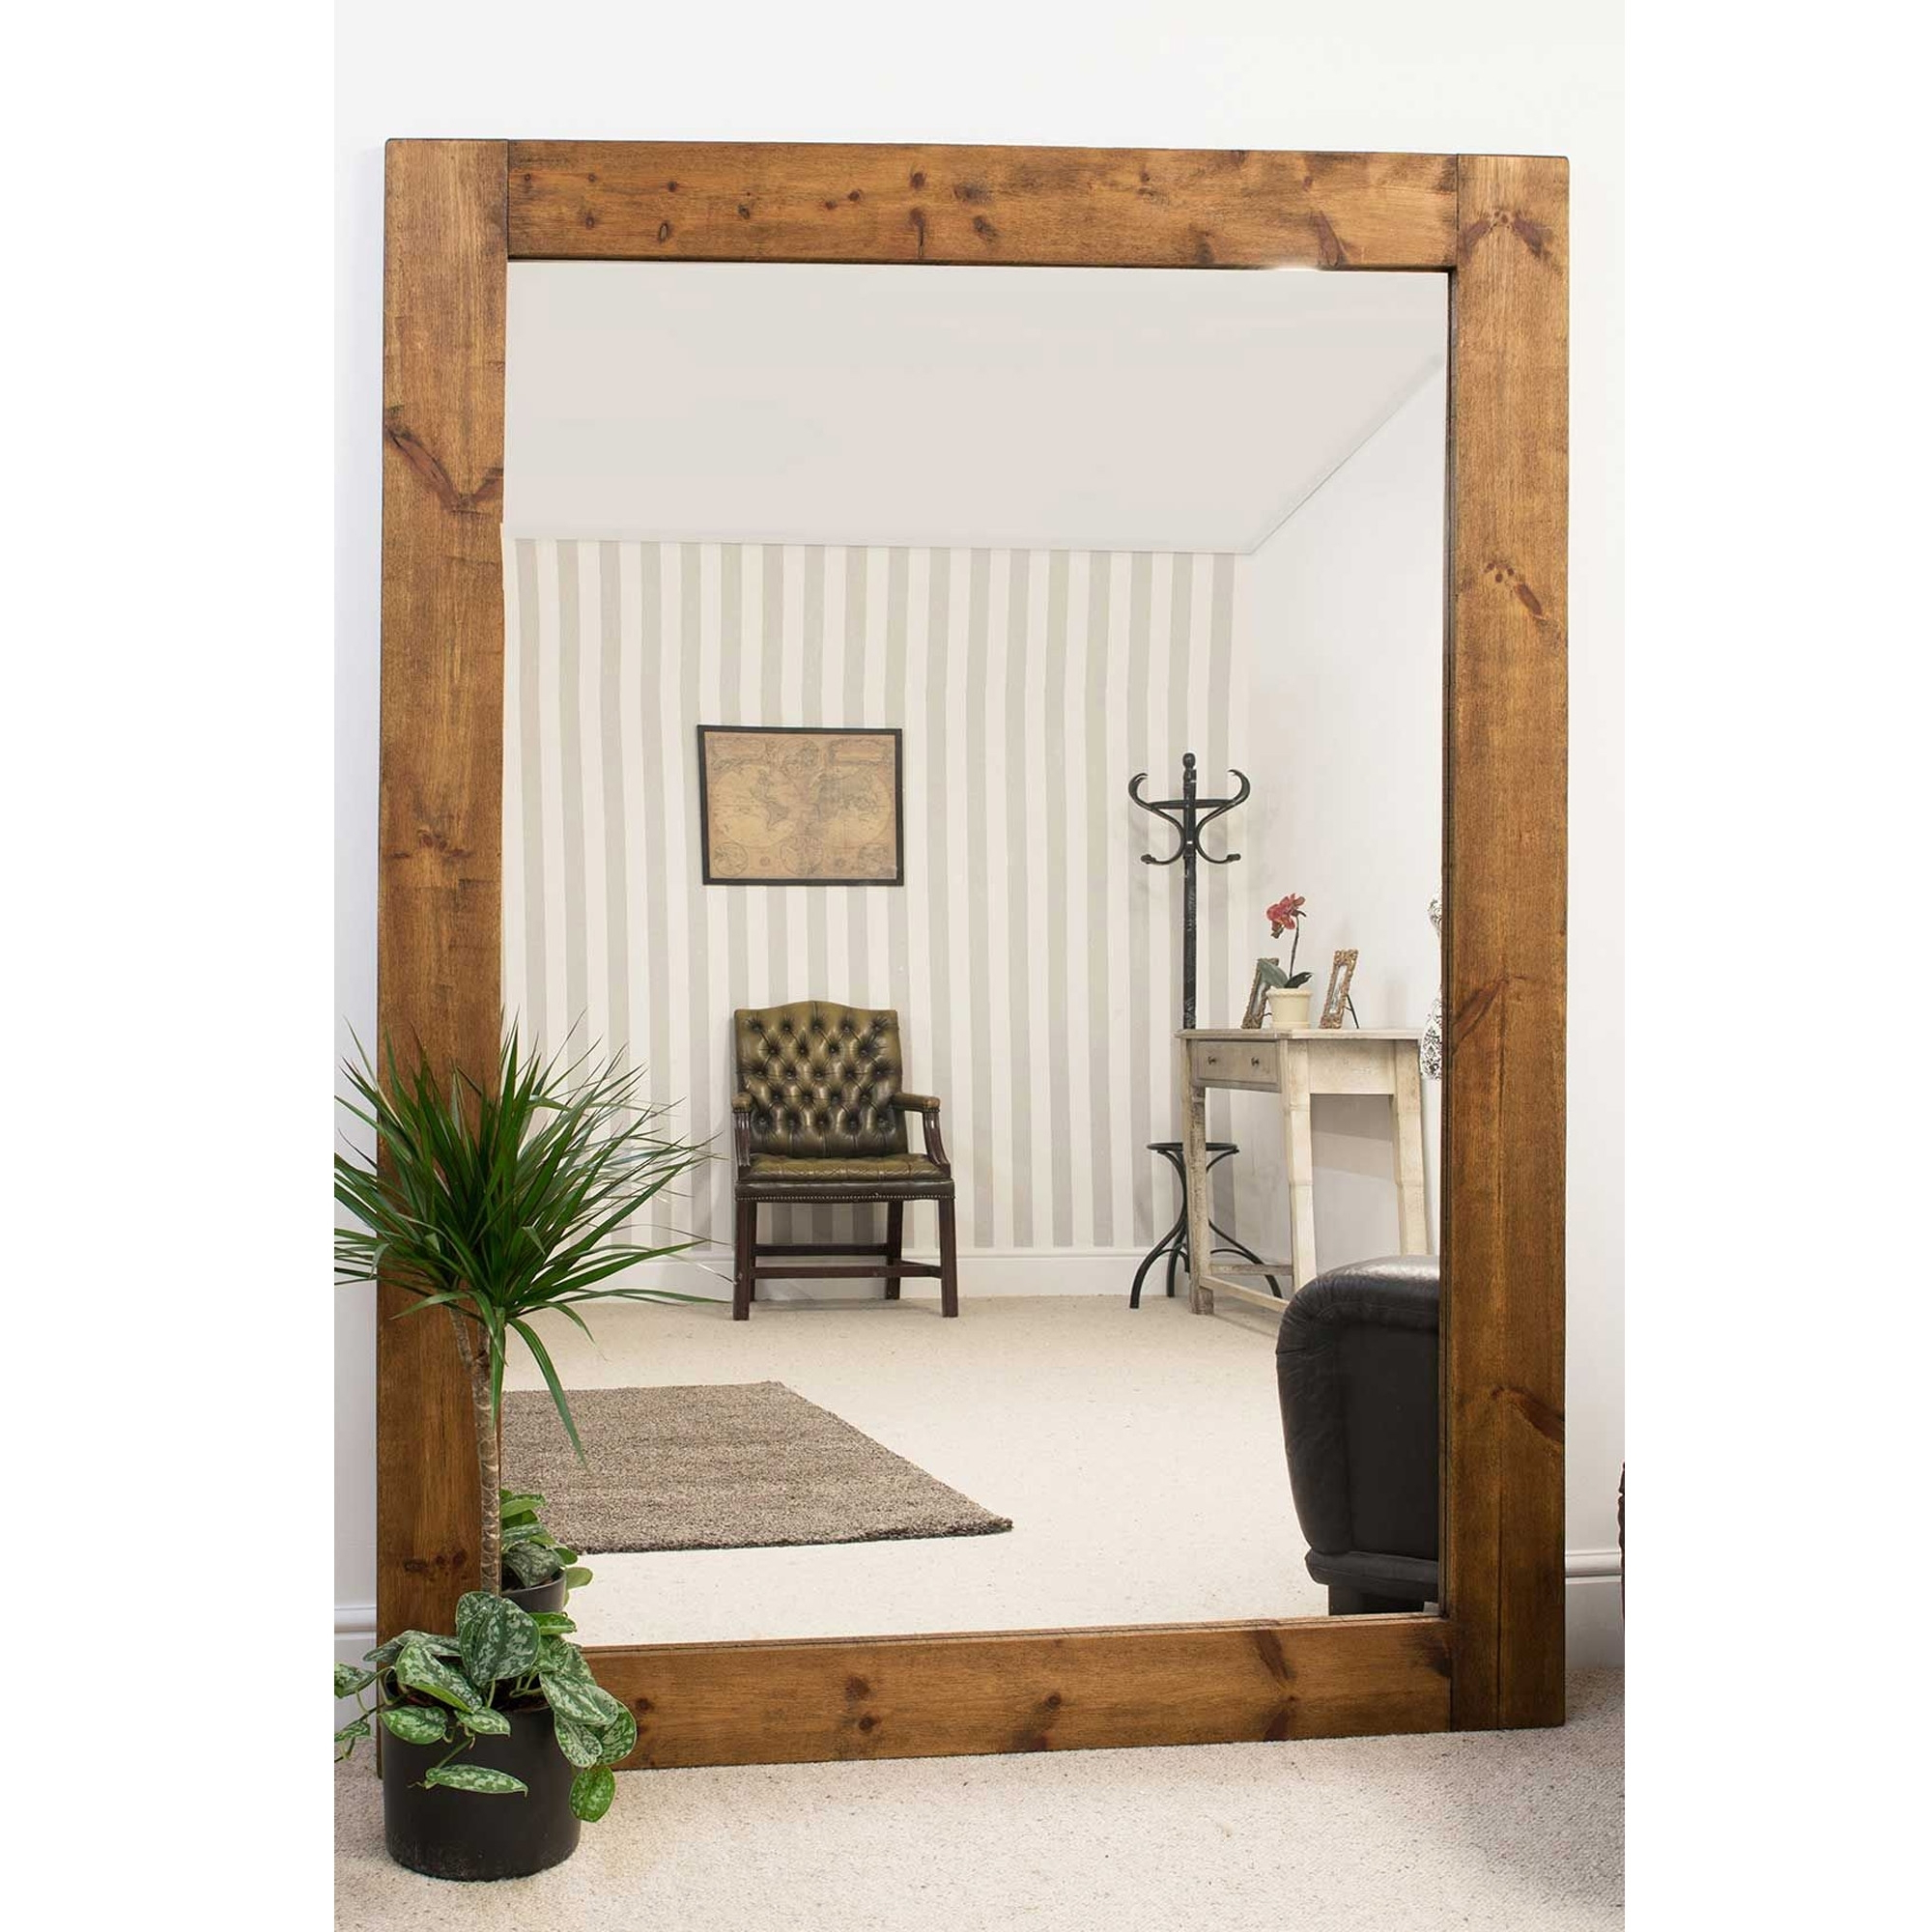 Fashionable Wooden Wall Mirrors With Large Wooden Wall Mirror (Gallery 1 of 20)